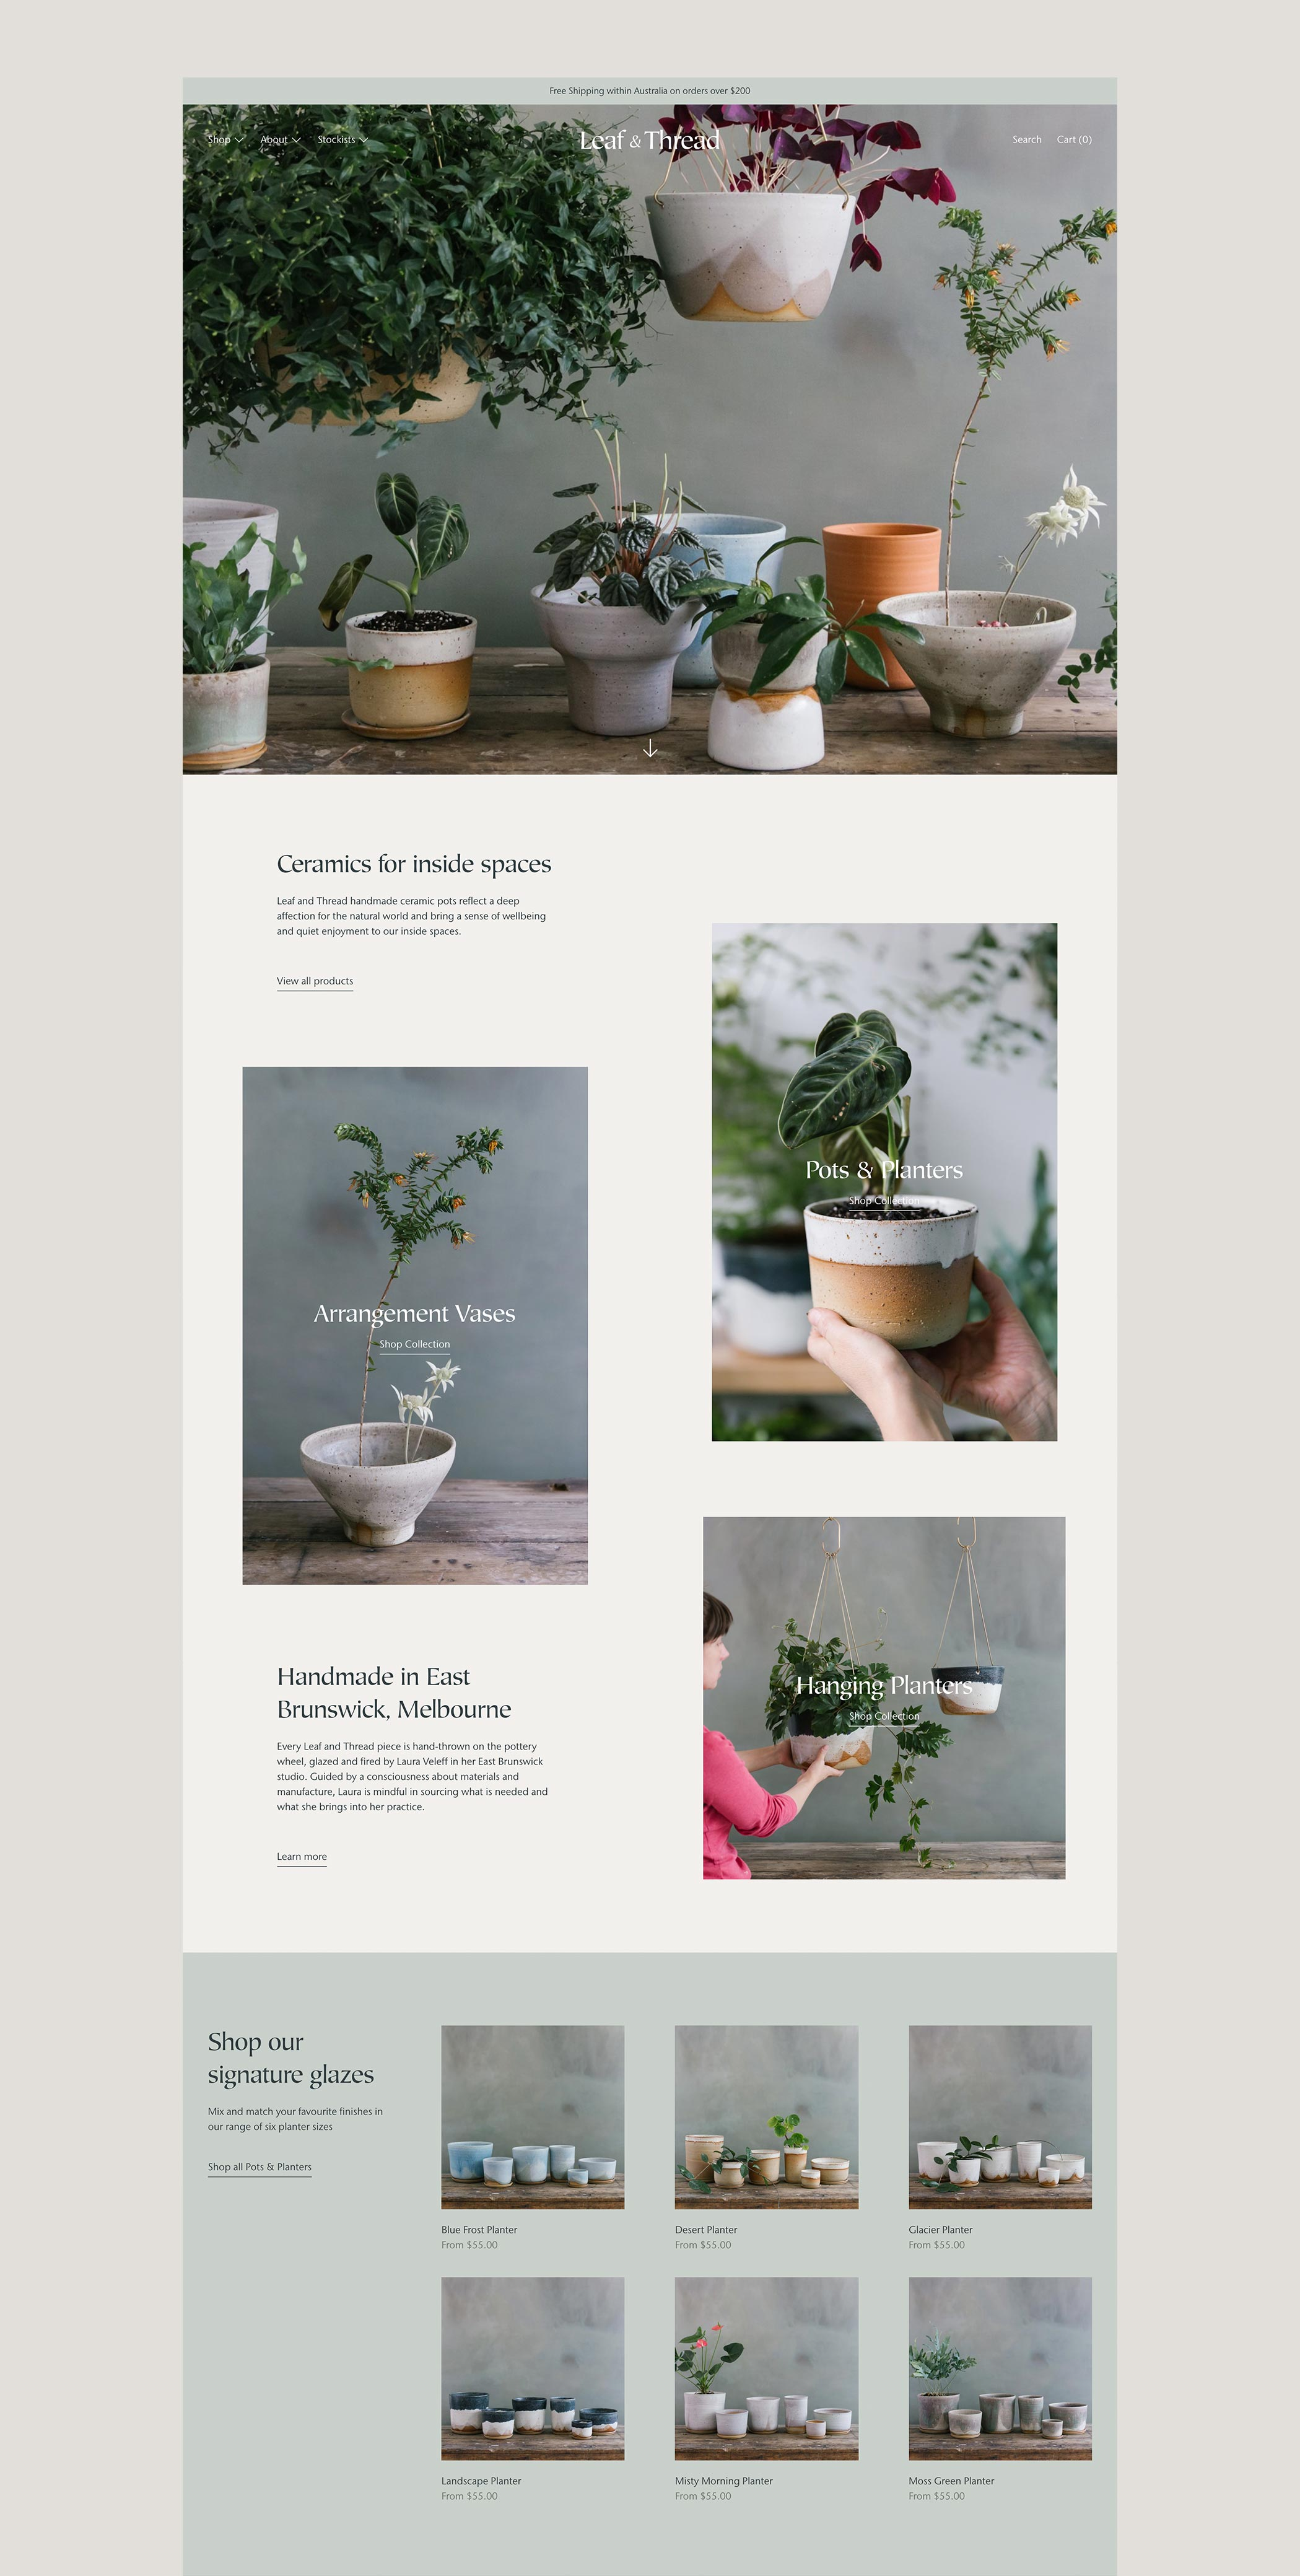 Shopify web design for Leaf and Thread Ceramics made in Melbourne